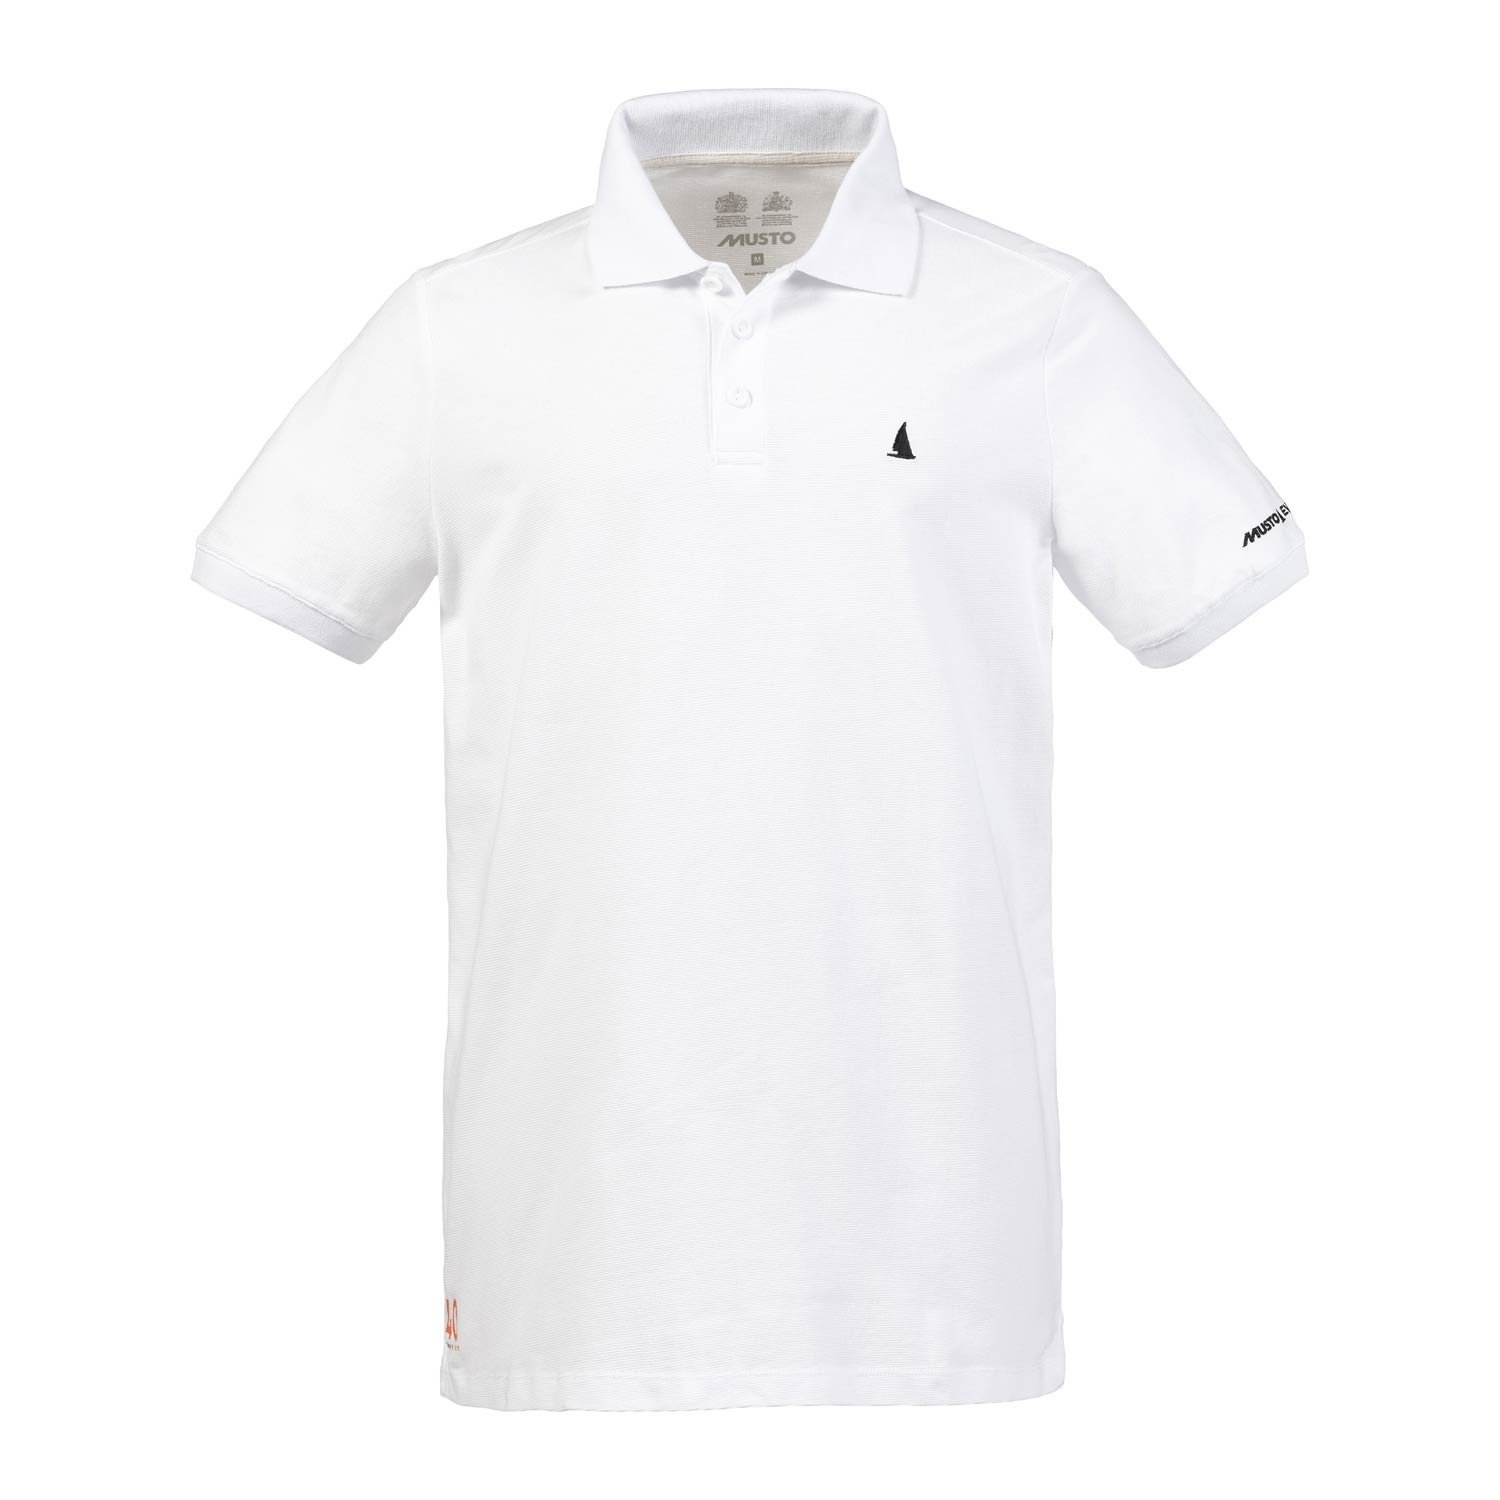 Musto Air UV Fast Dry Short Sleeves Sennen Polo - Optic Optic - Weiß 67fdcd